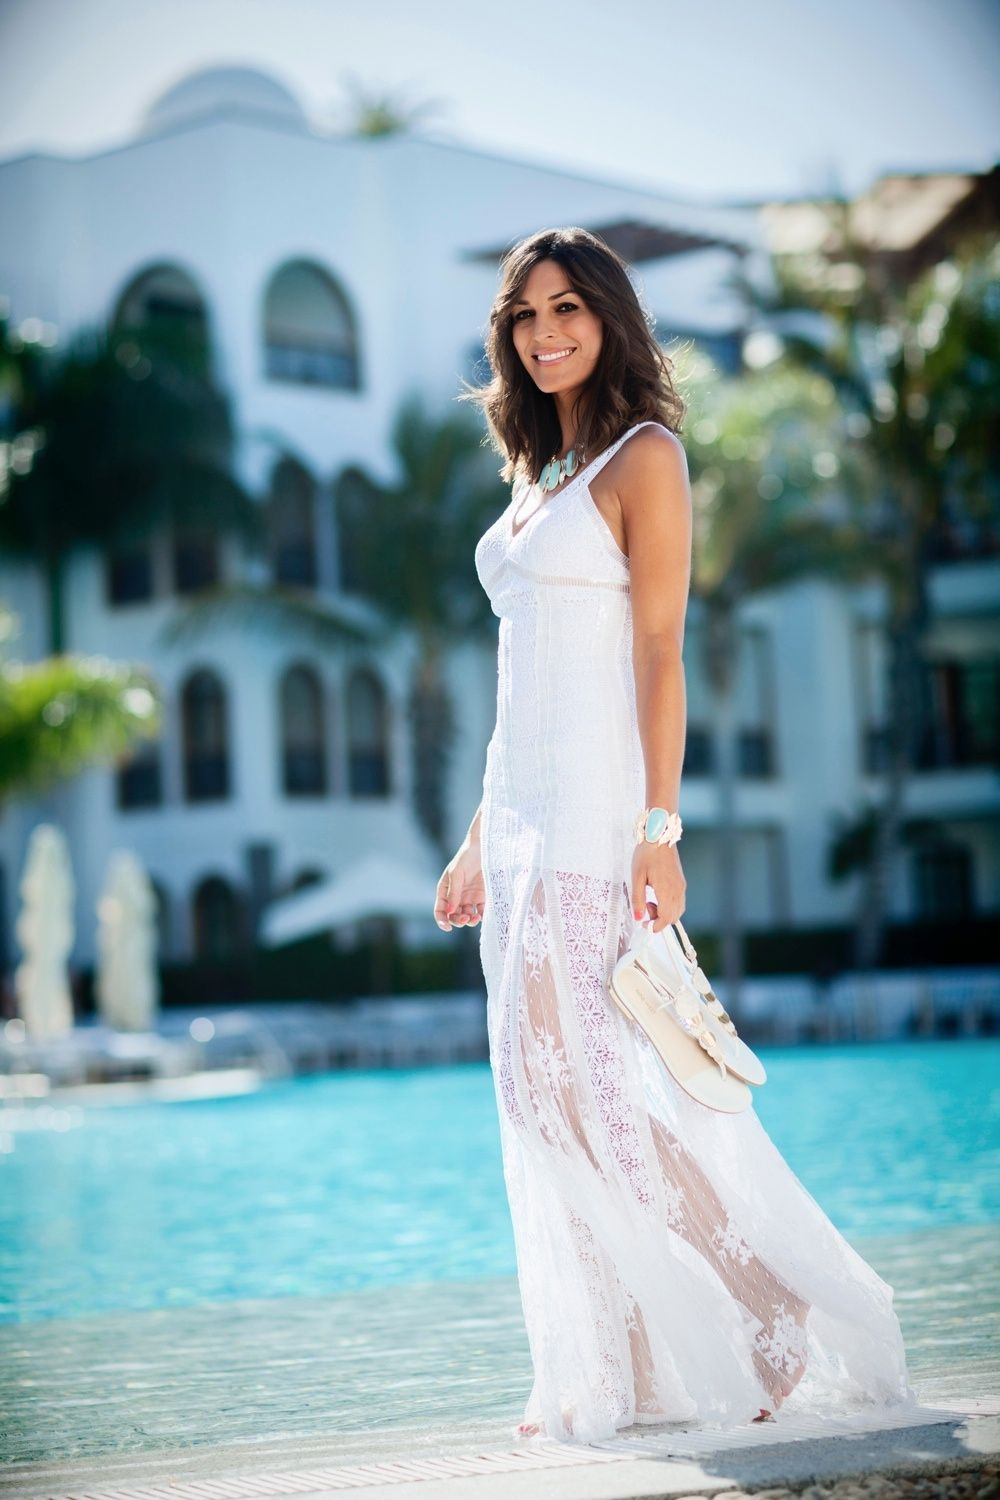 Verónica Hidalgo with our Bohemian Glam collection at Lanzarote ...